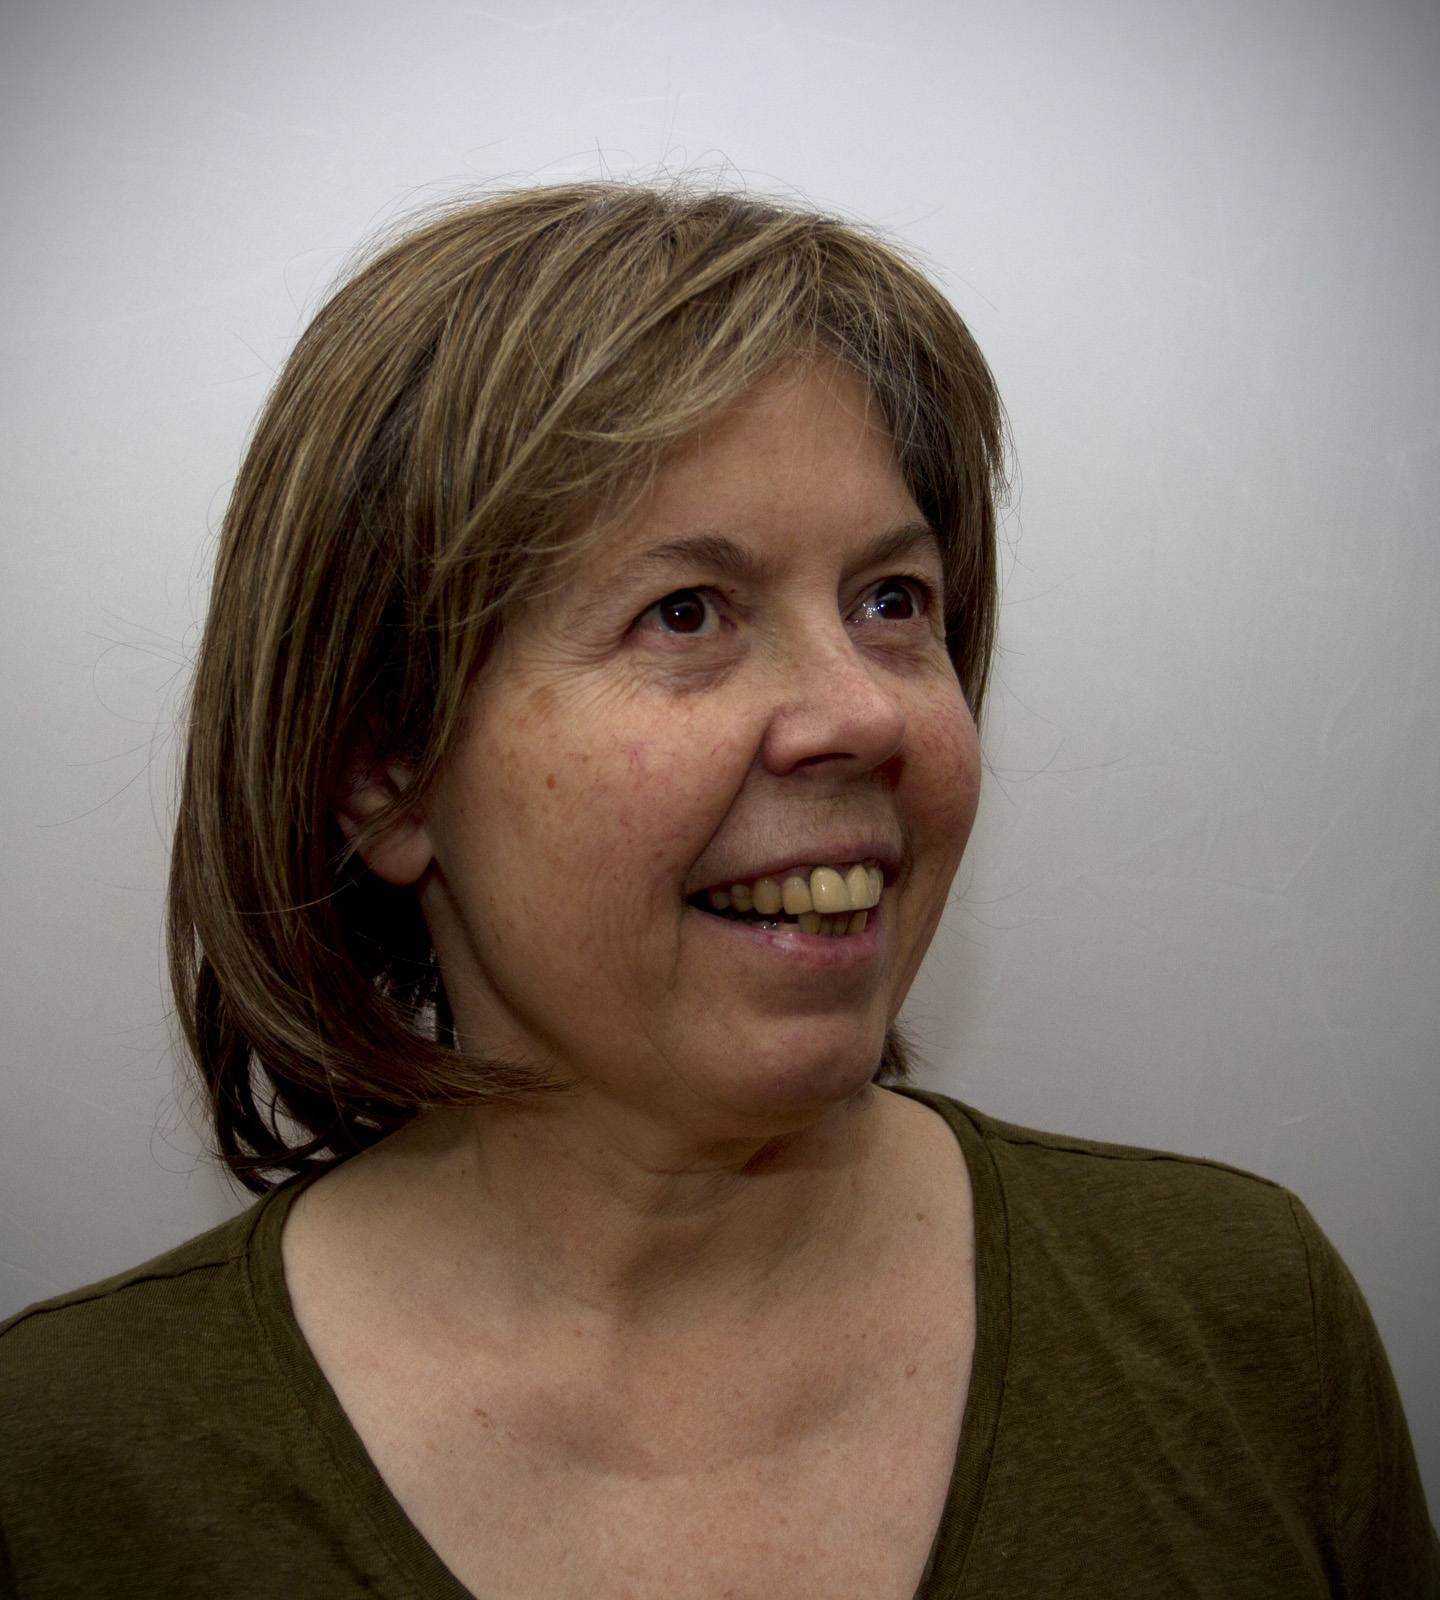 SARA BACKER - Former Californian Sara Backer now has an MFA from the Vermont College of Fine Arts, lives in New Hampshire, and teaches at UMass Lowell. She has two chapbooks, Scavenger Hunt (dancing girl press, 2018) and Bicycle Lotus (Left Fork, 2015), which won the Turtle Island Poetry Award. Her writing has been honored with residency fellowships from the Norton Island and Djerassi programs and with eight Pushcart Prize nominations. Her website is sarabacker.com.Headshot: Bryan Pfeiffer